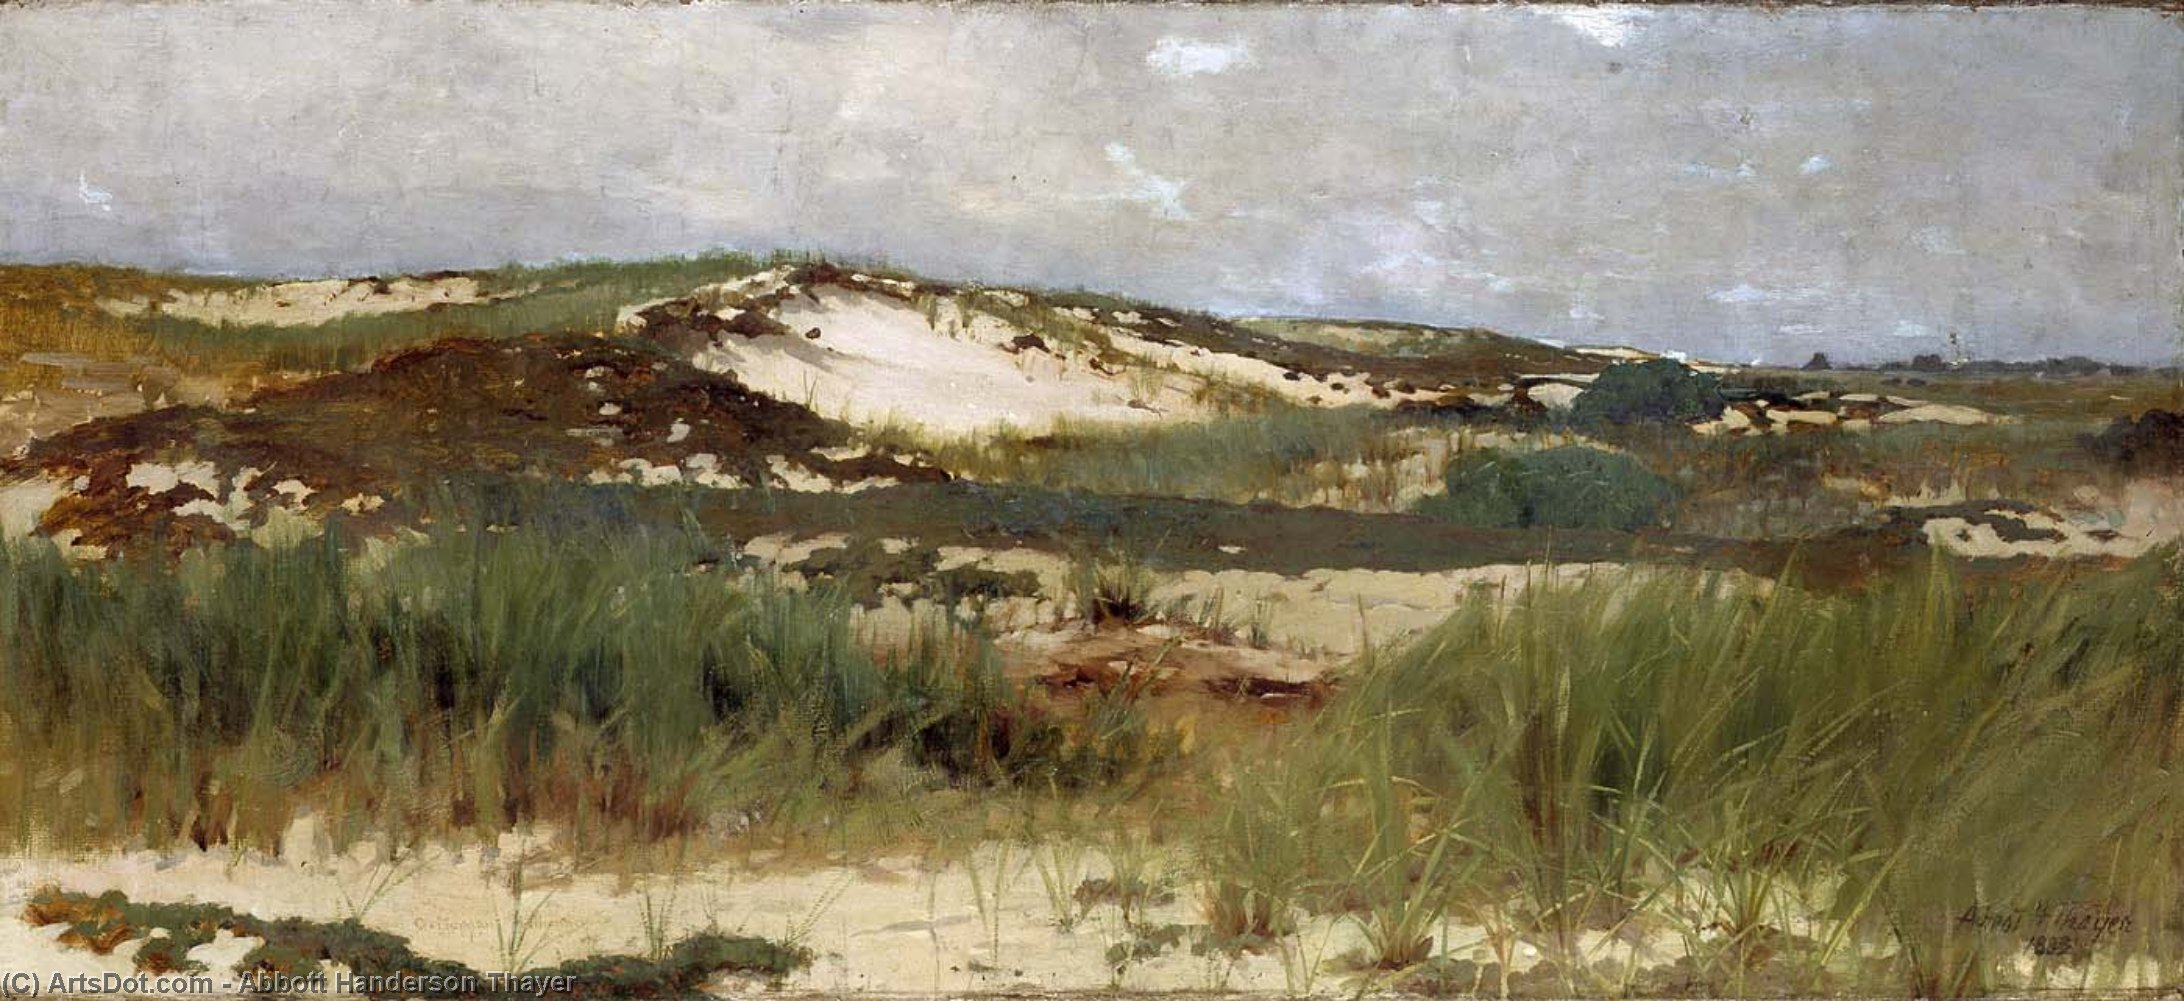 Nantucket Sand Dune, Oil On Canvas by Abbott Handerson Thayer (1849-1921, United States)